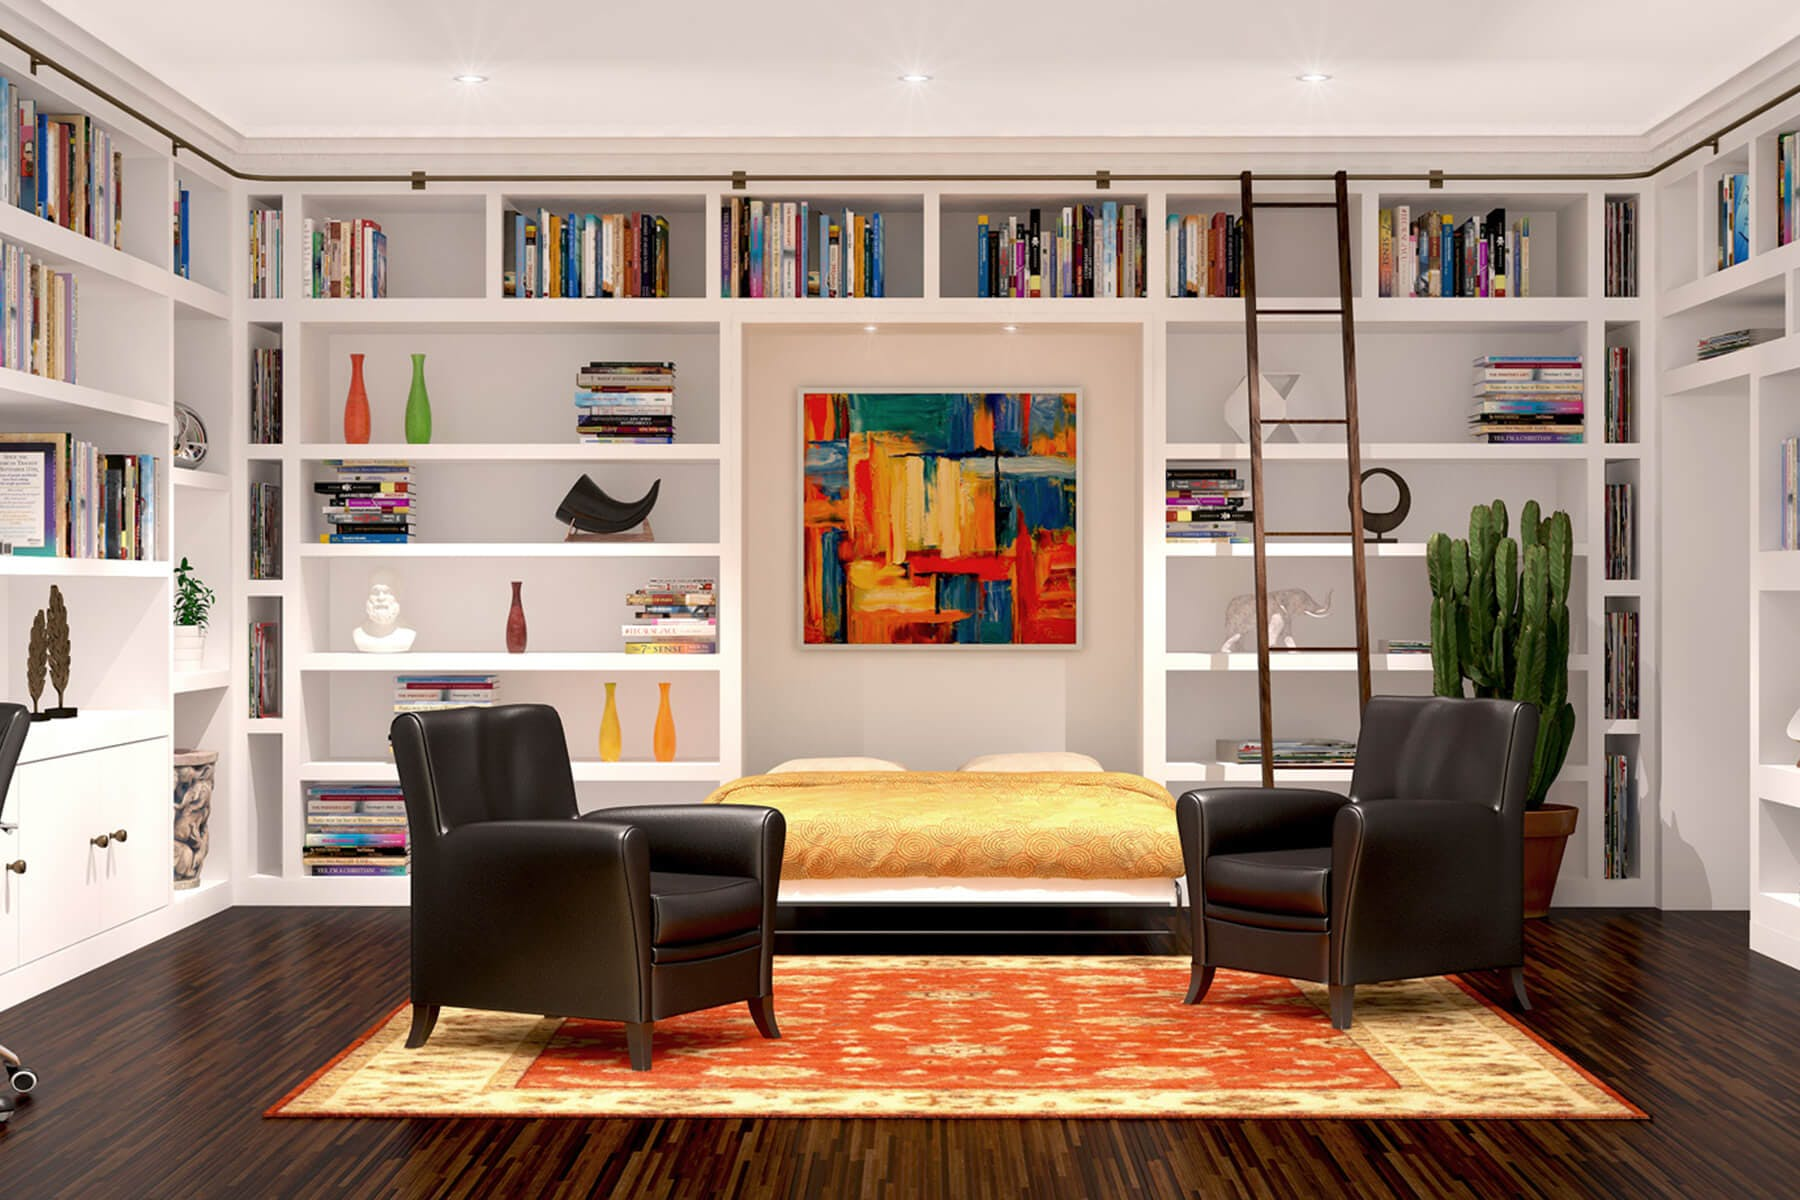 murphy bed in small living room decorating ideas for rectangular wall beds and cabinet design closet factory painted white library